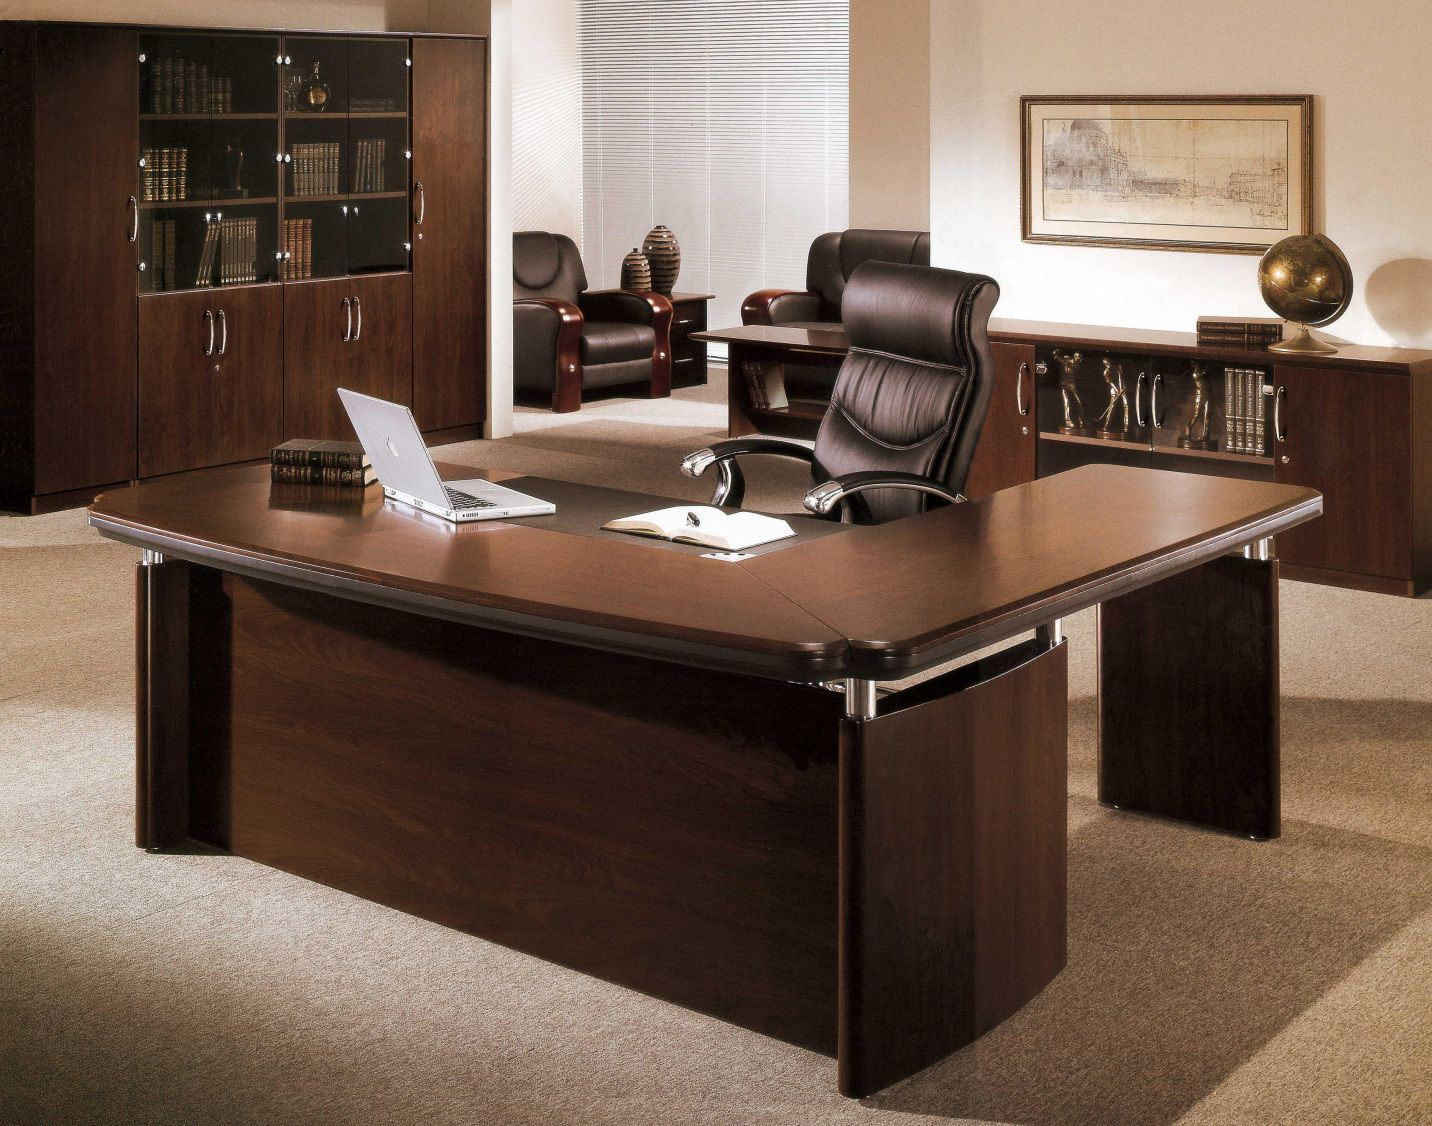 Genial Small Executive Office Desk   Contemporary Home Office Furniture Check More  At Http://